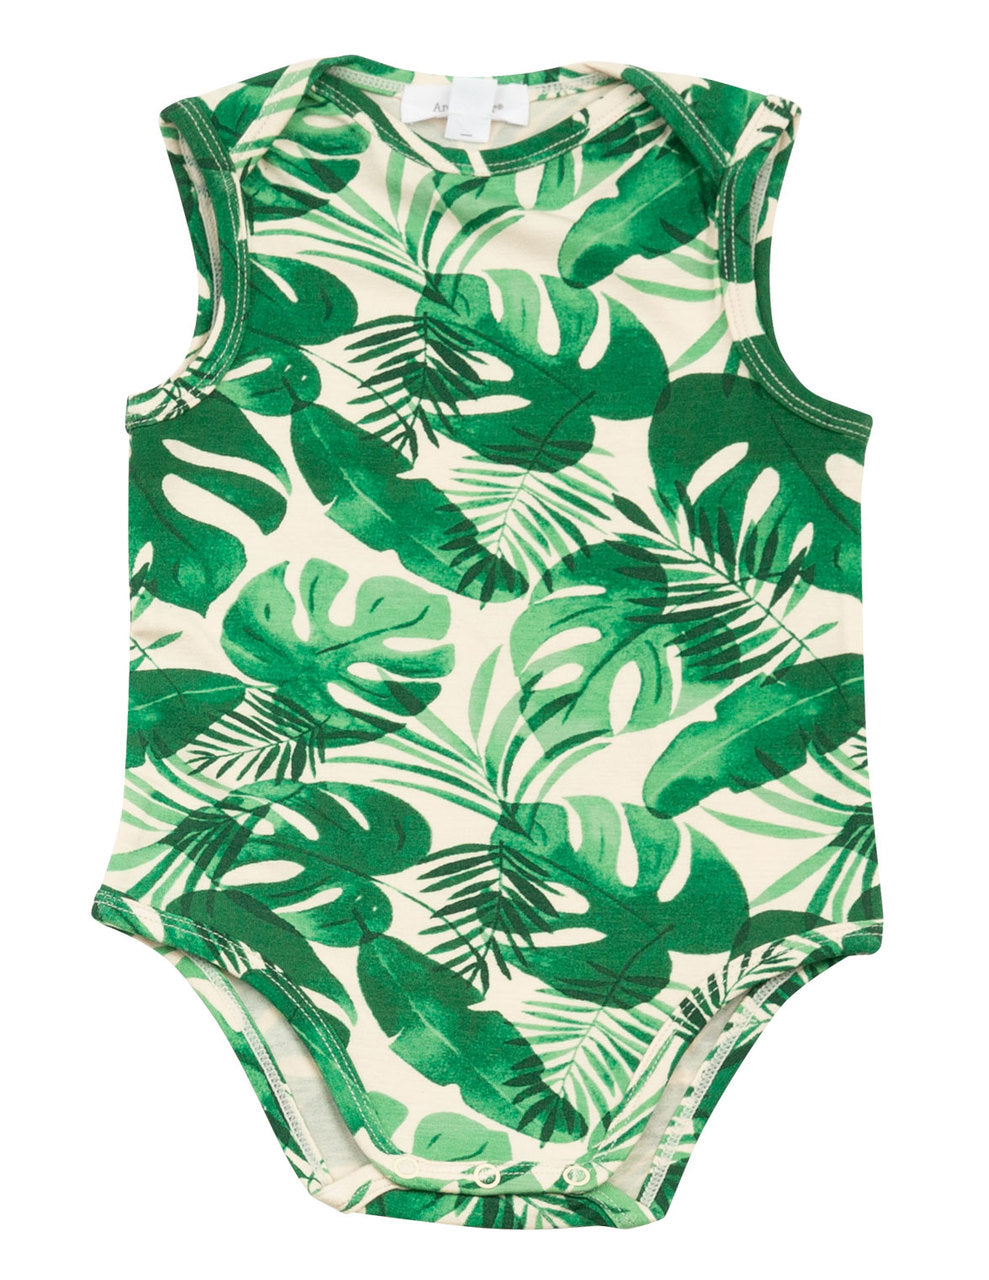 Monstera Deliciosa Bodysuit with Lap Shoulder Opening